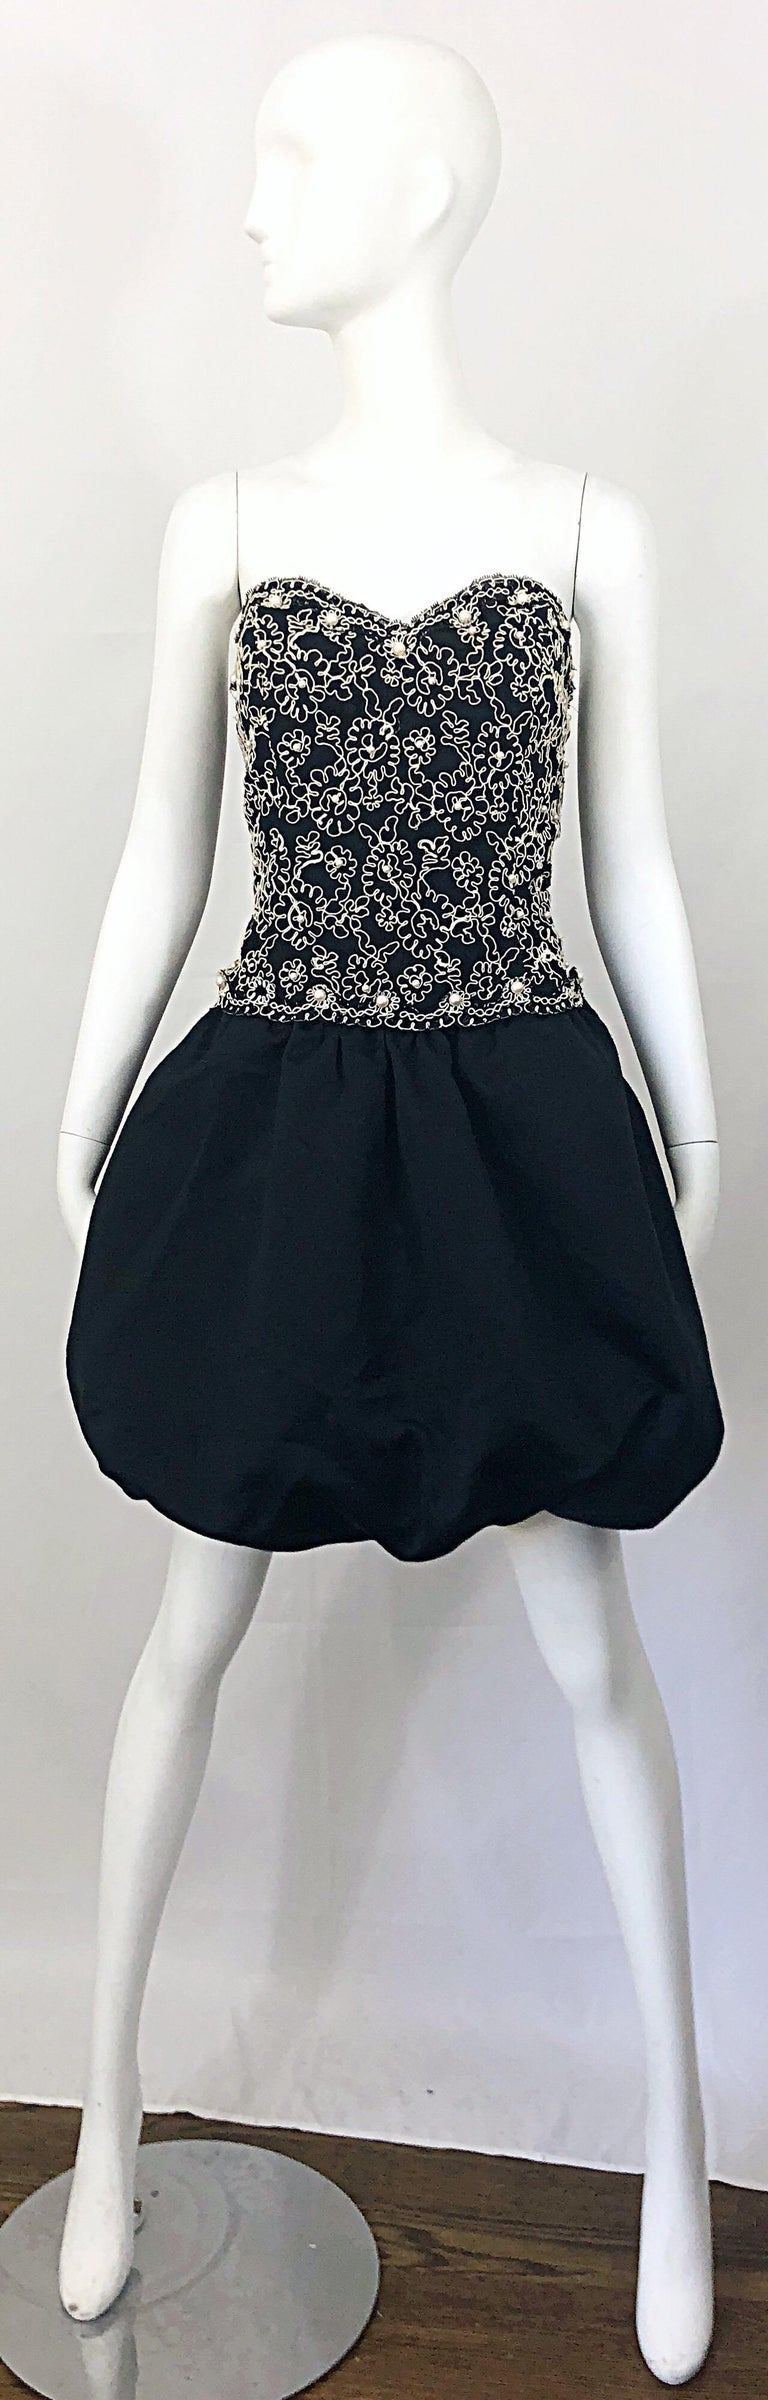 Chic vintage 80s black and white pearl encrusted Size 12 strapless embroidered party pouf dress! Features a fitted boned black bodice with white embroidery and hand-sewn pearls throughout. Forgiving pouf bubble skirt hides any 'problem' areas.